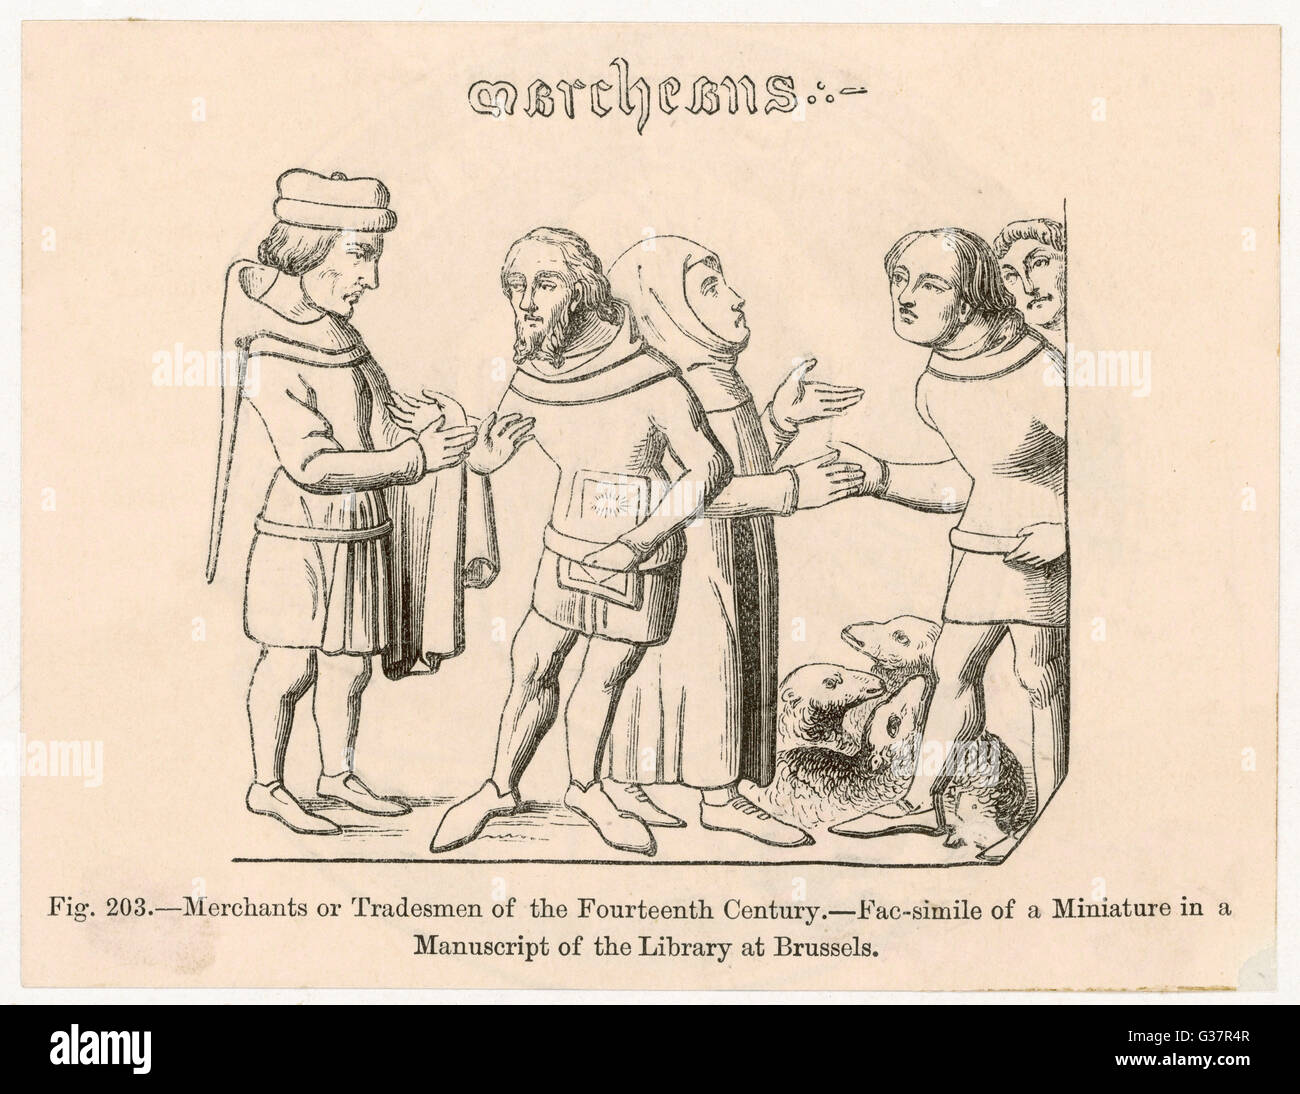 Merchants and tradesmen          Date: 14TH CENTURY - Stock Image